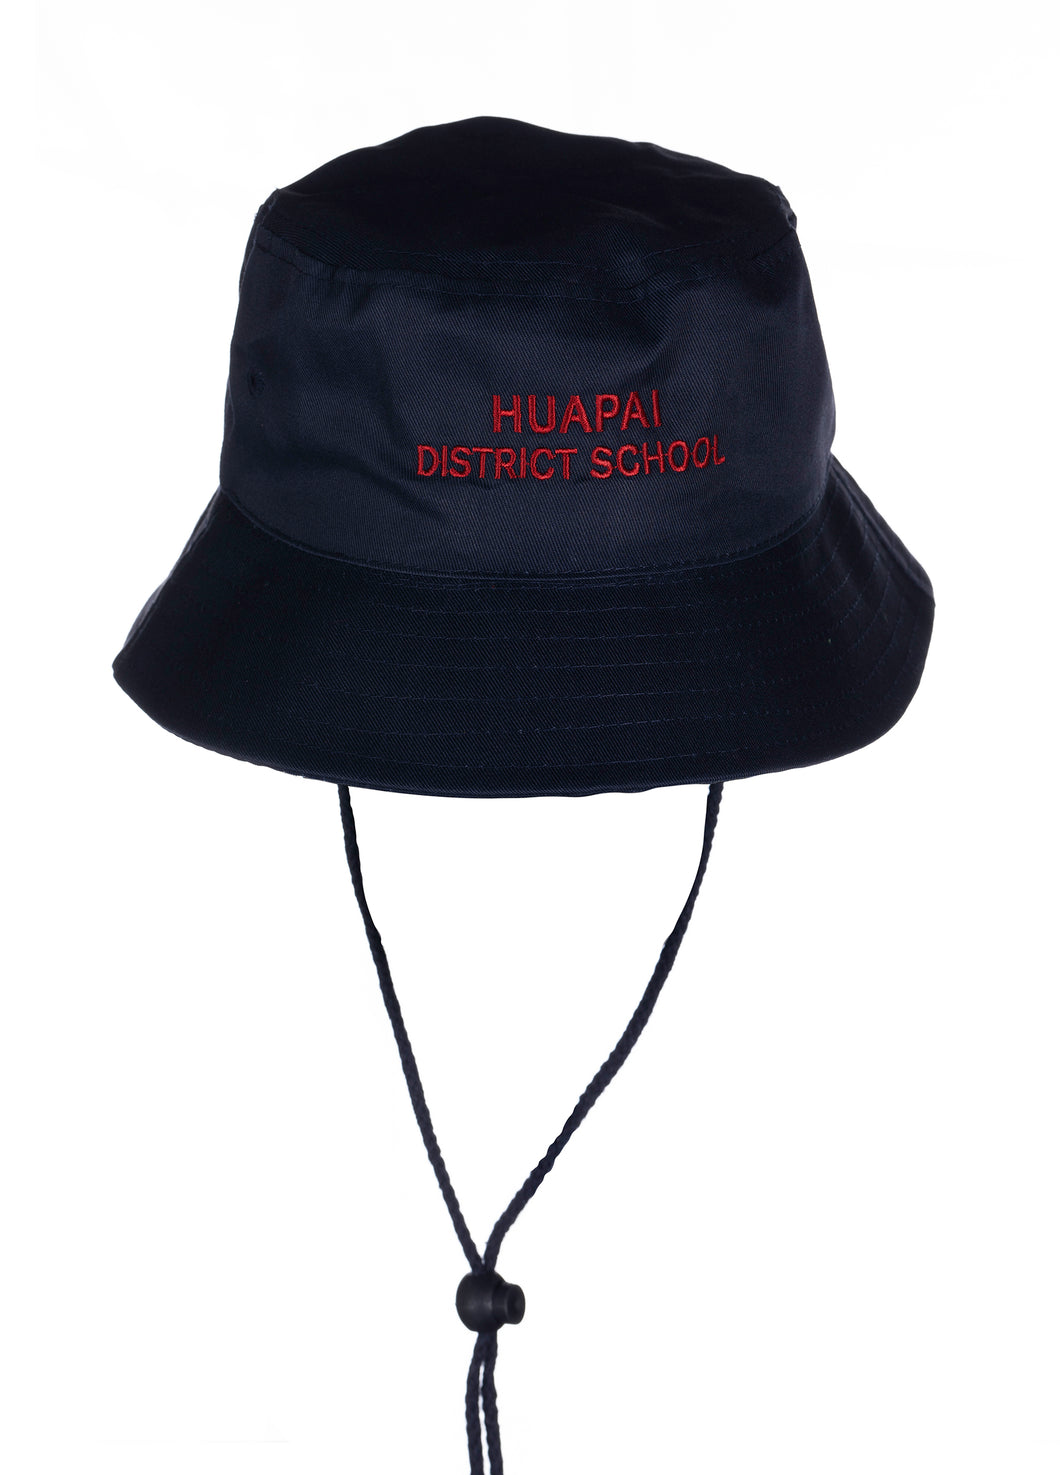 Huapai District School - Sunhat